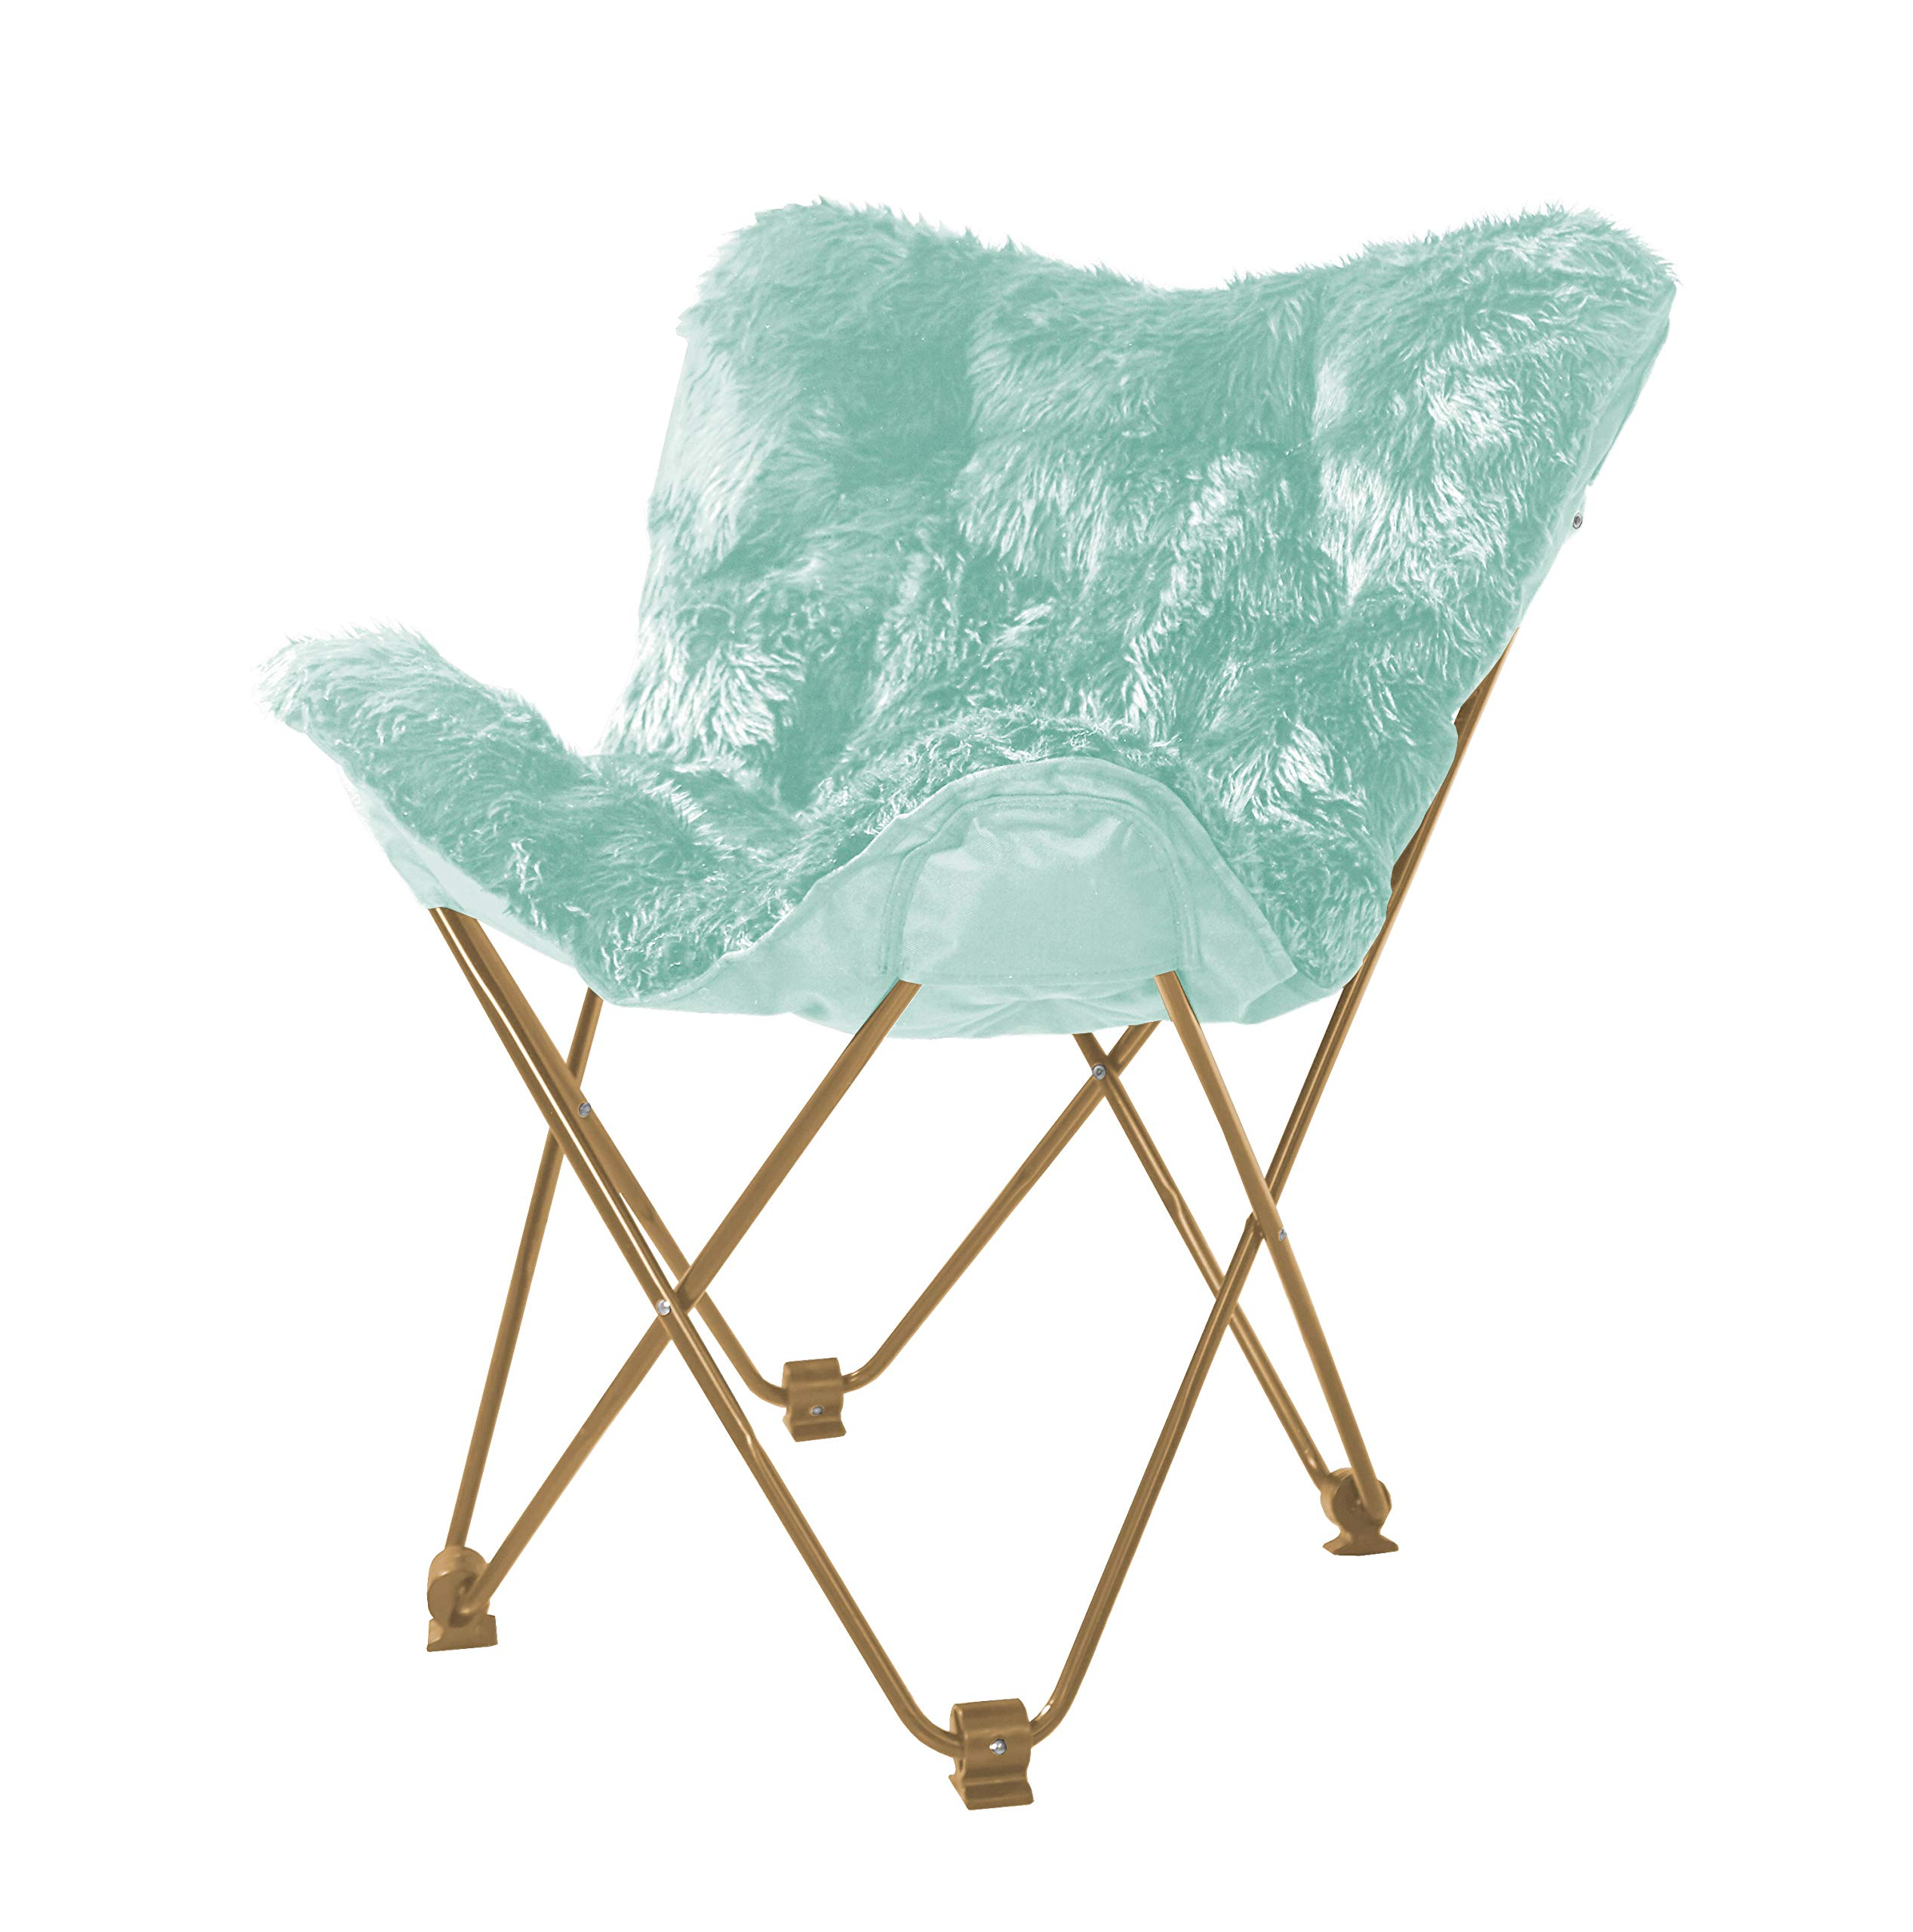 Urban Shop WK657563 Mongolian Butterfly Chair, Aqua